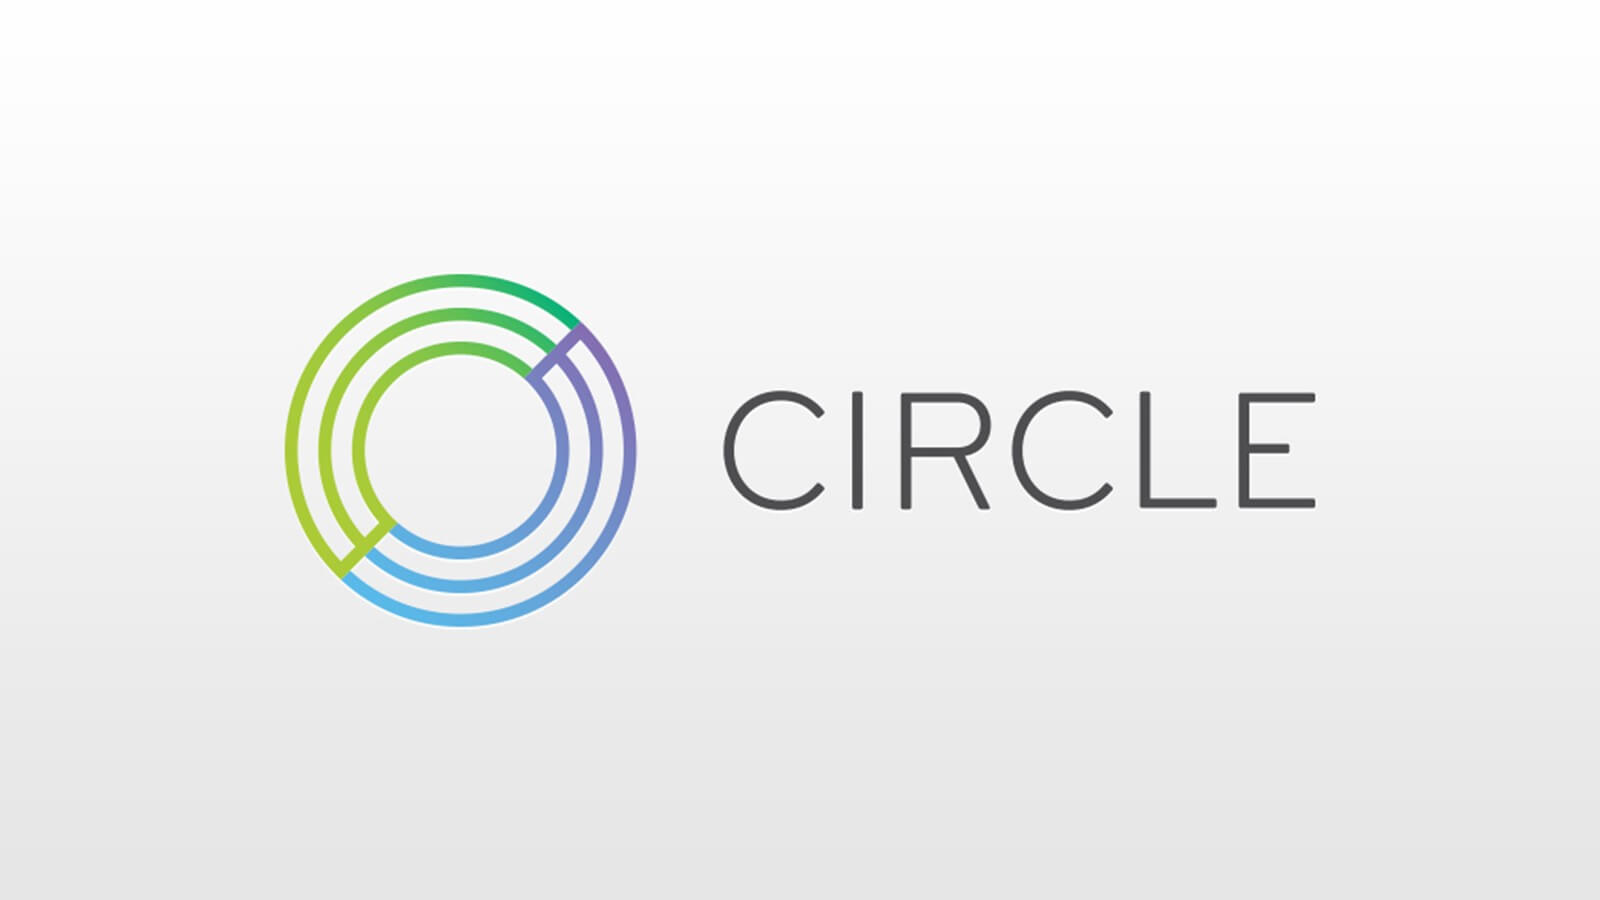 Circle Achieved $24 Billion Volume In 2018 - CryptoNewsZ